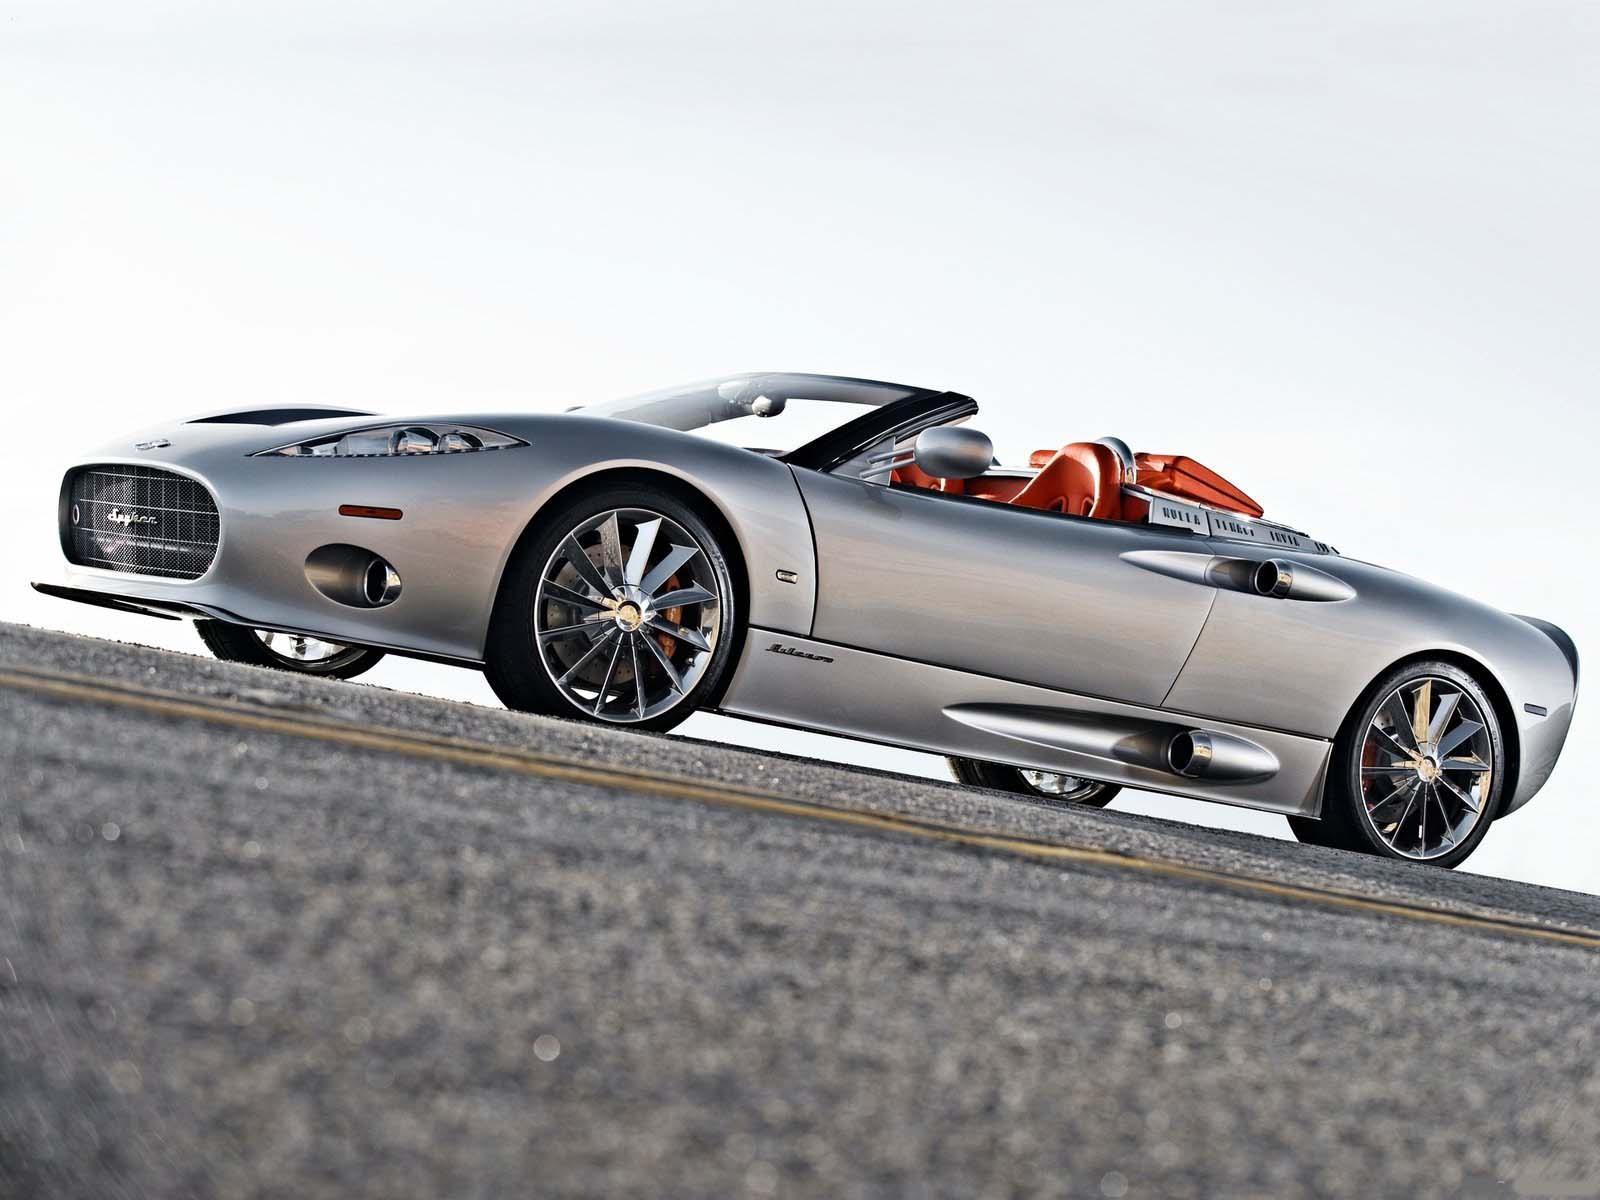 Spyker spyder photo - 2